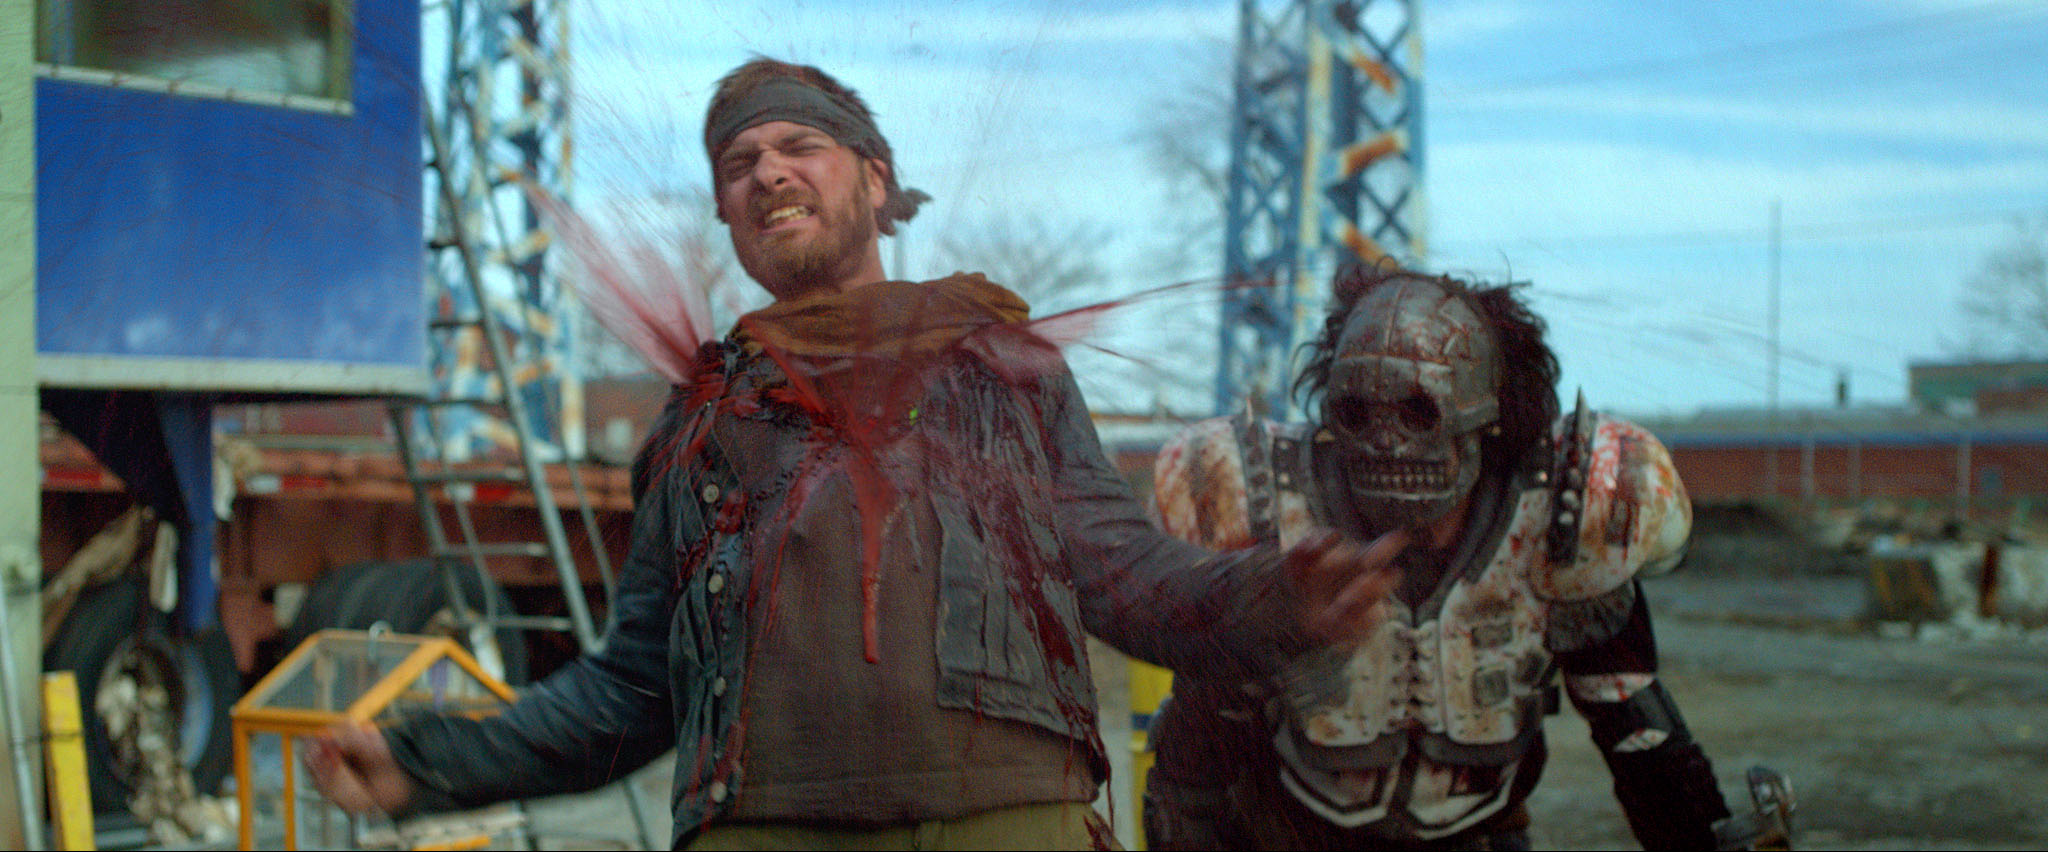 Turbo Kid Gets a Badass SteelBook Edition in Canada - Dread Central